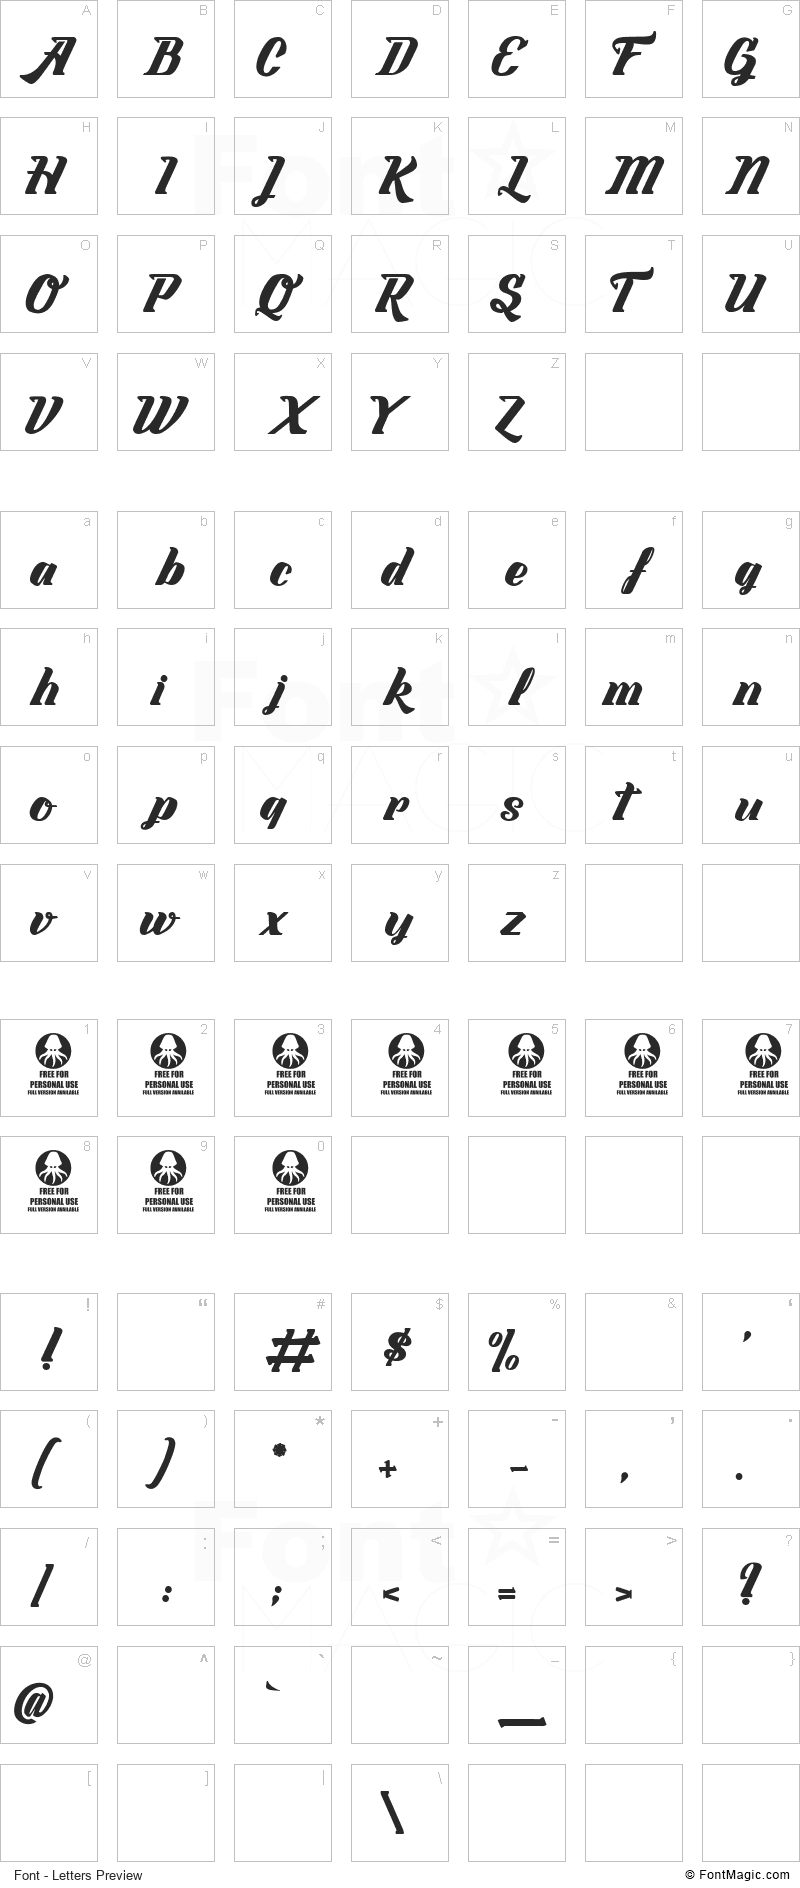 Labyrinthe du Paradis Font - All Latters Preview Chart